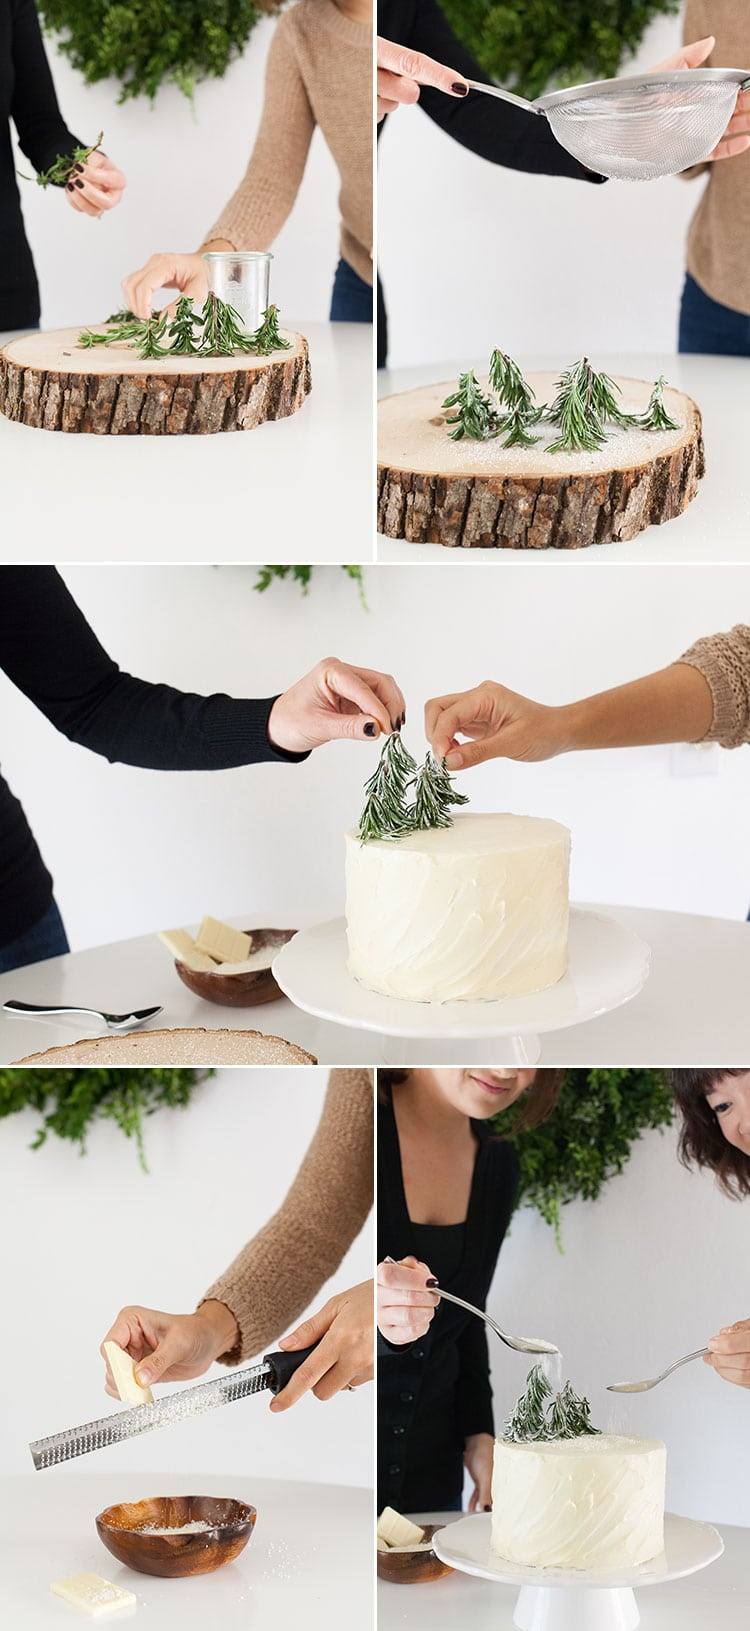 How To Decorate Cakes